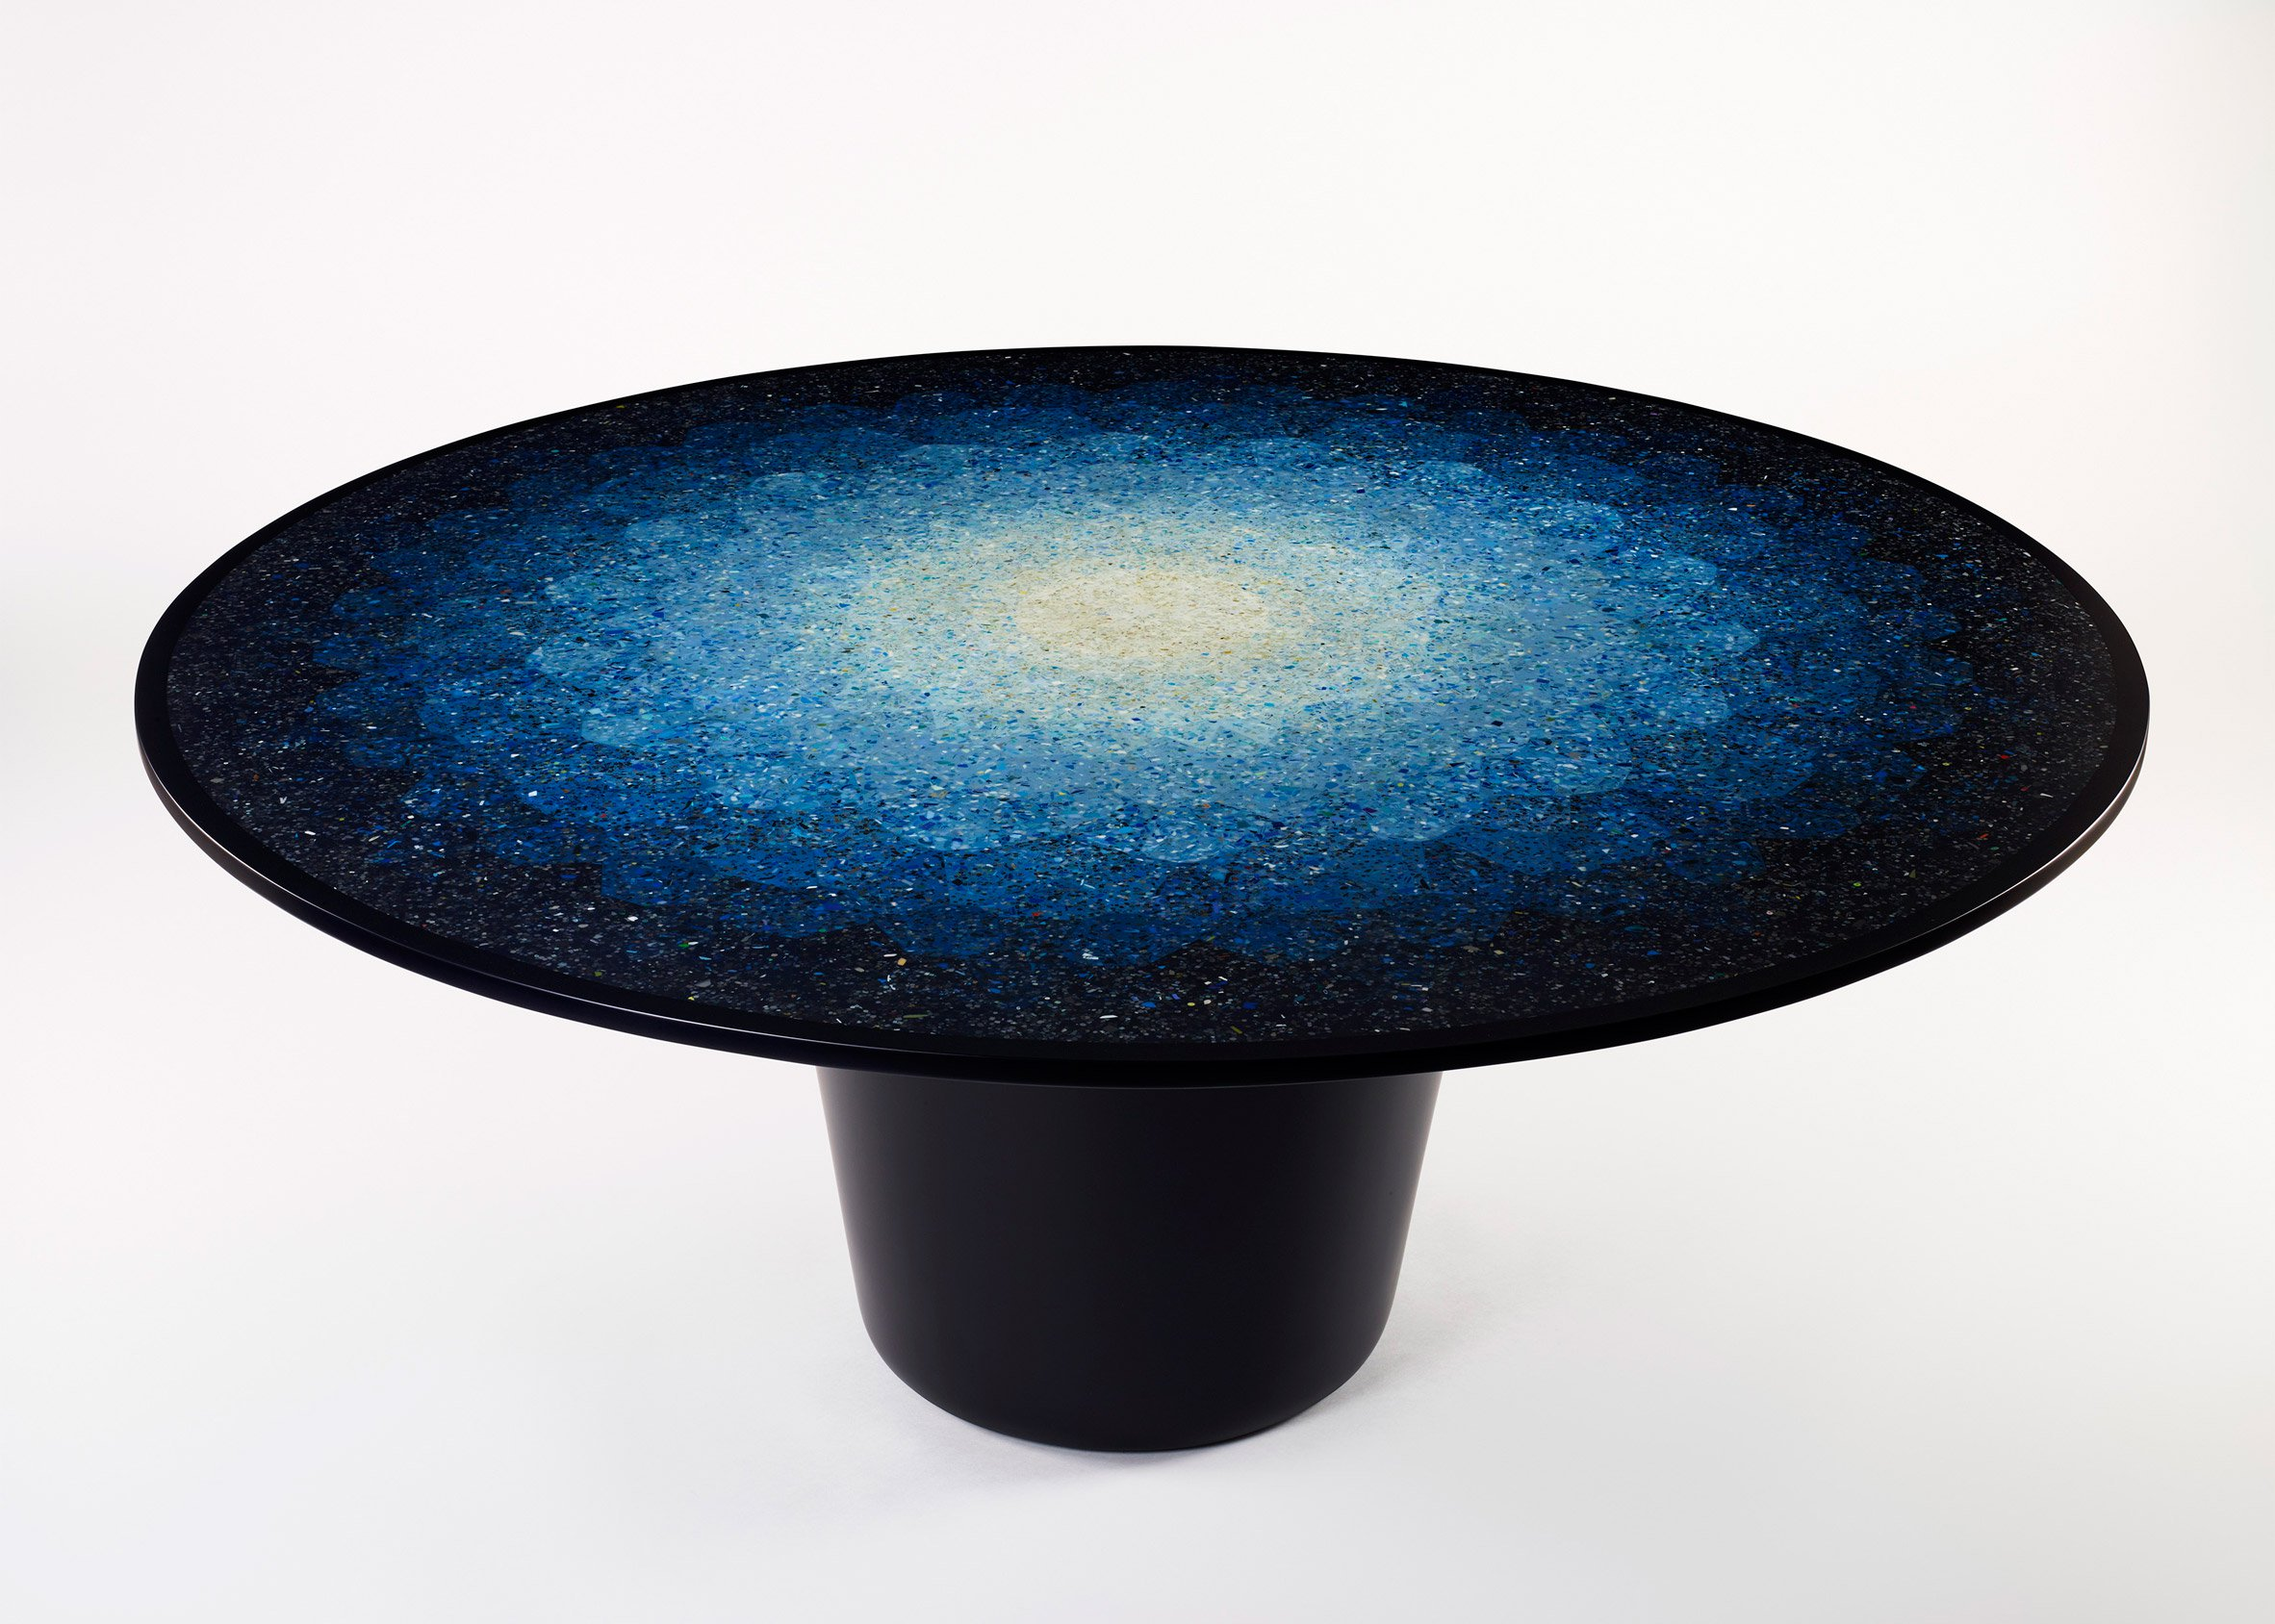 Brodie Neill's jewel-like 'Gyro' table made from recycled ocean plastic was the Australian entry at the inaugural London Design Biennale. Washed up plastic debris is a real problem for Tasmania.